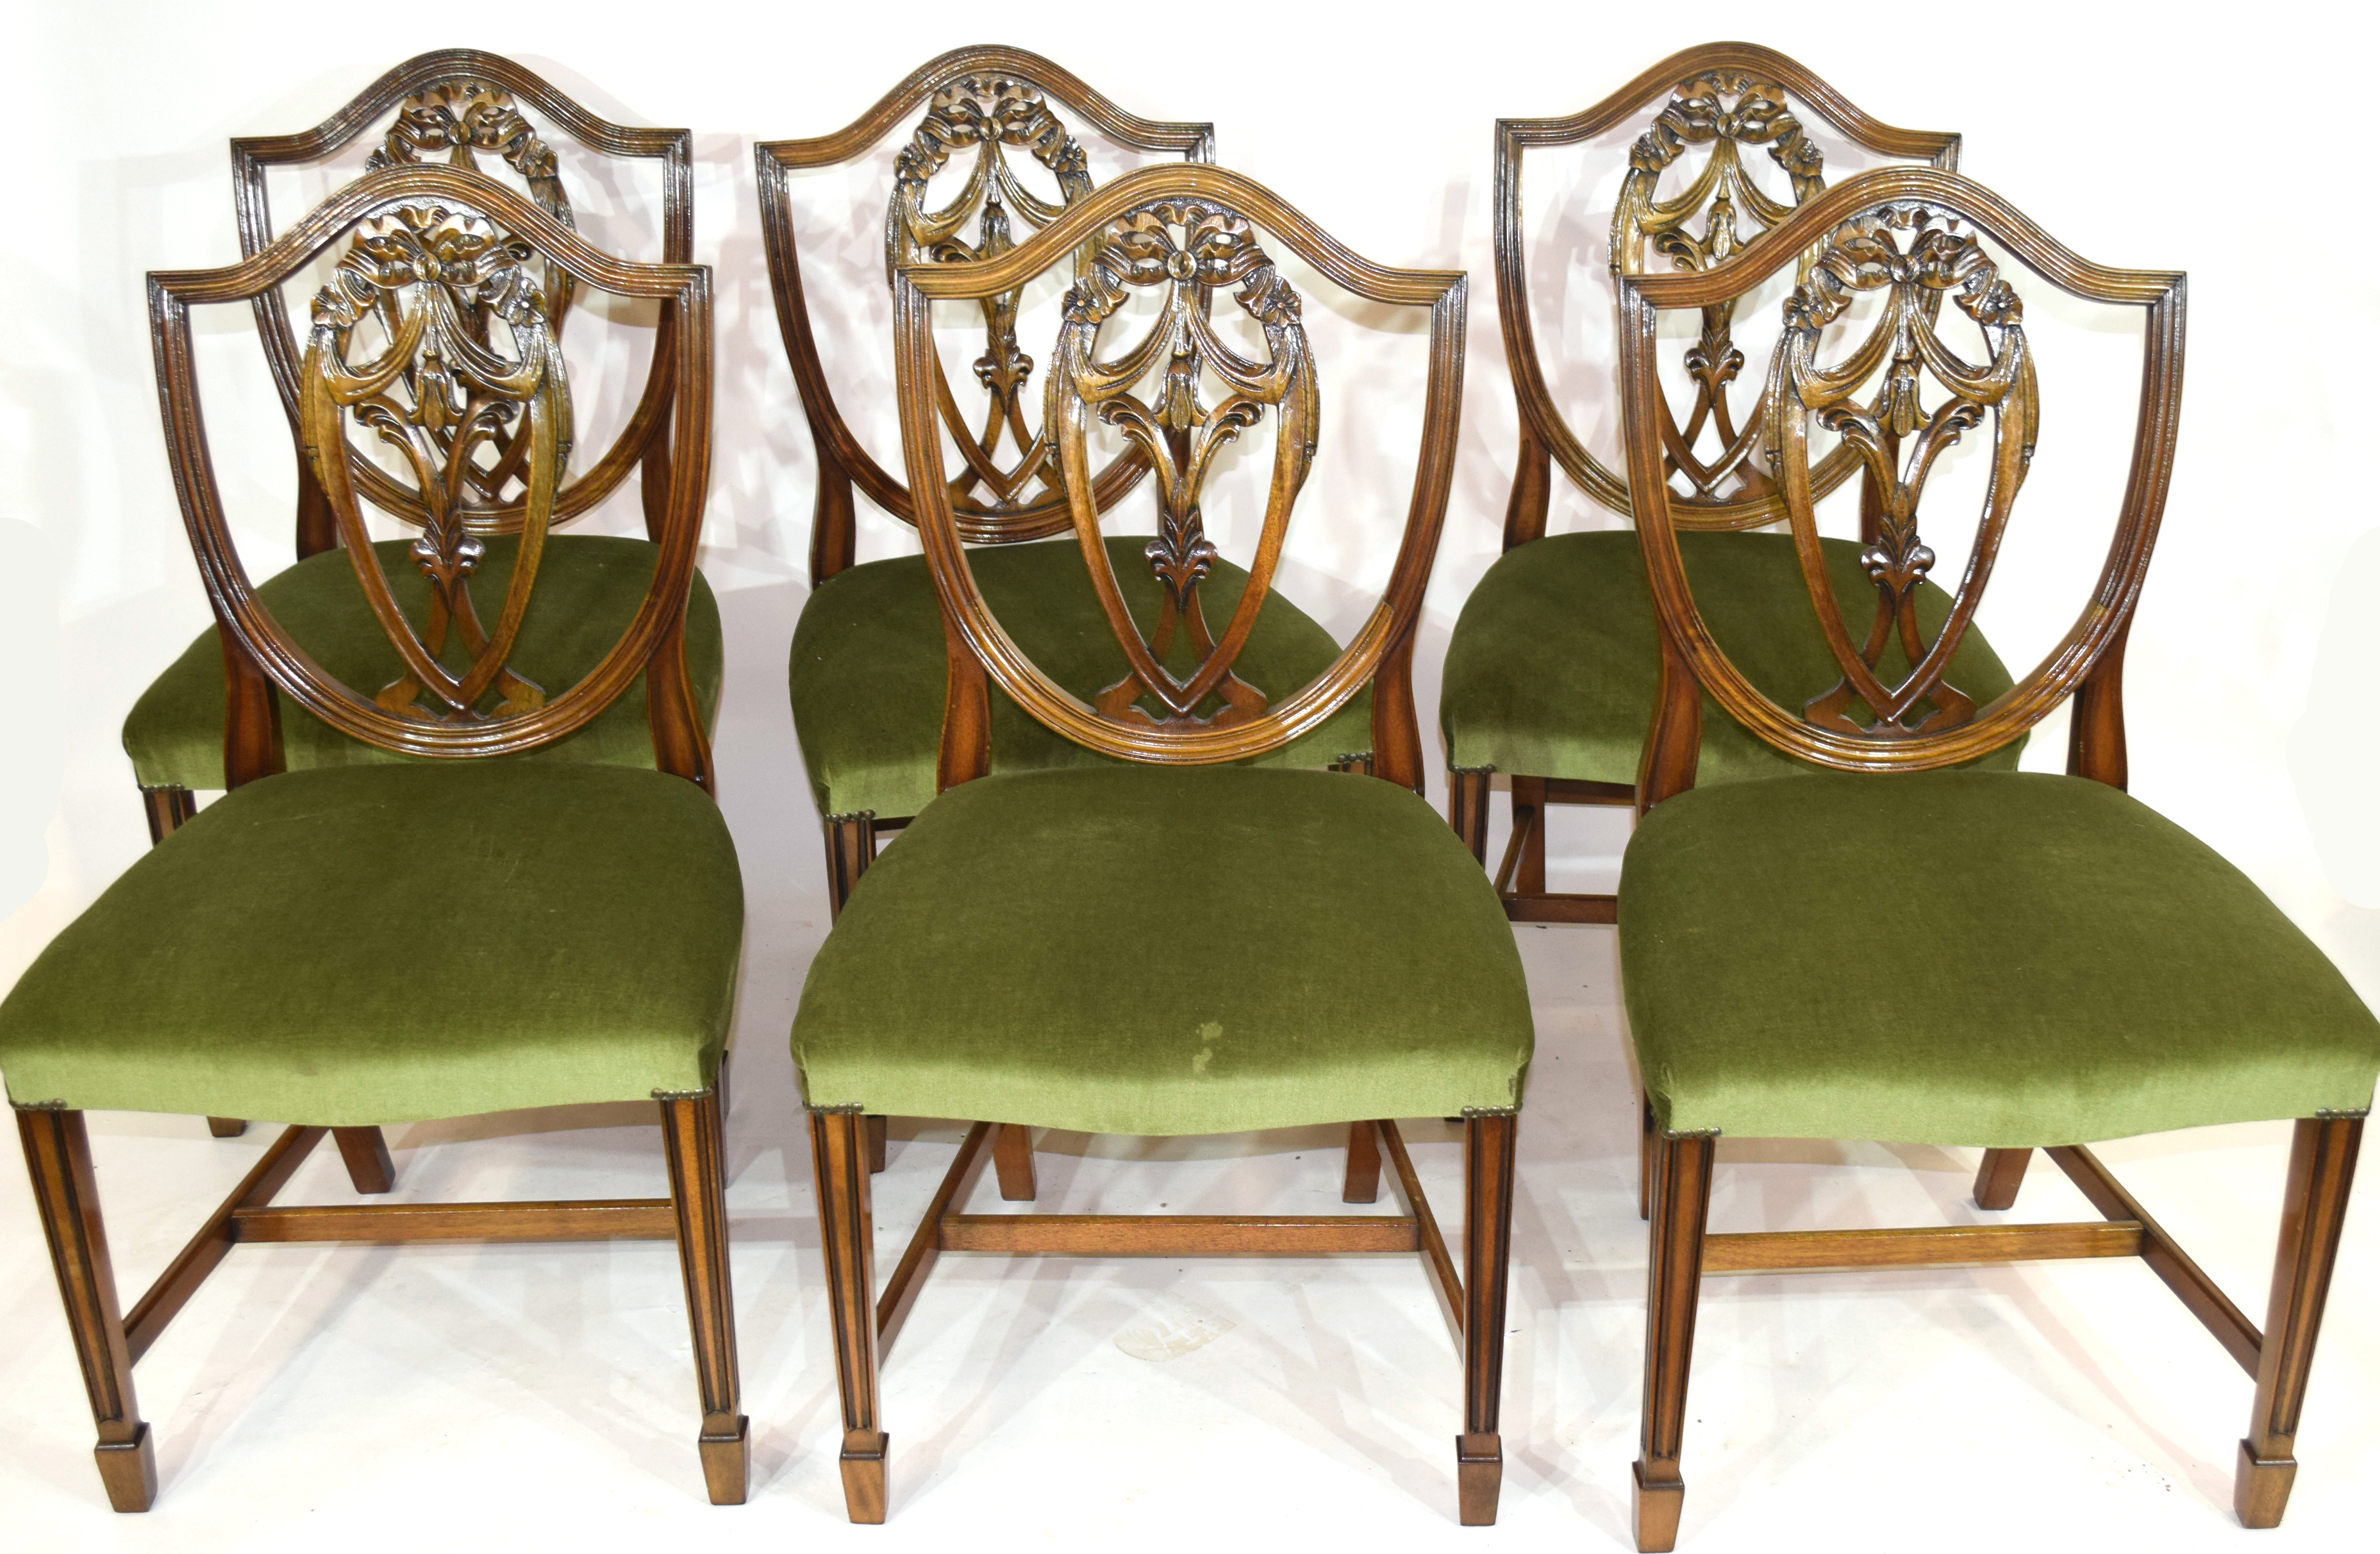 Set of six reproduction shield back dining chairs - Image 2 of 3